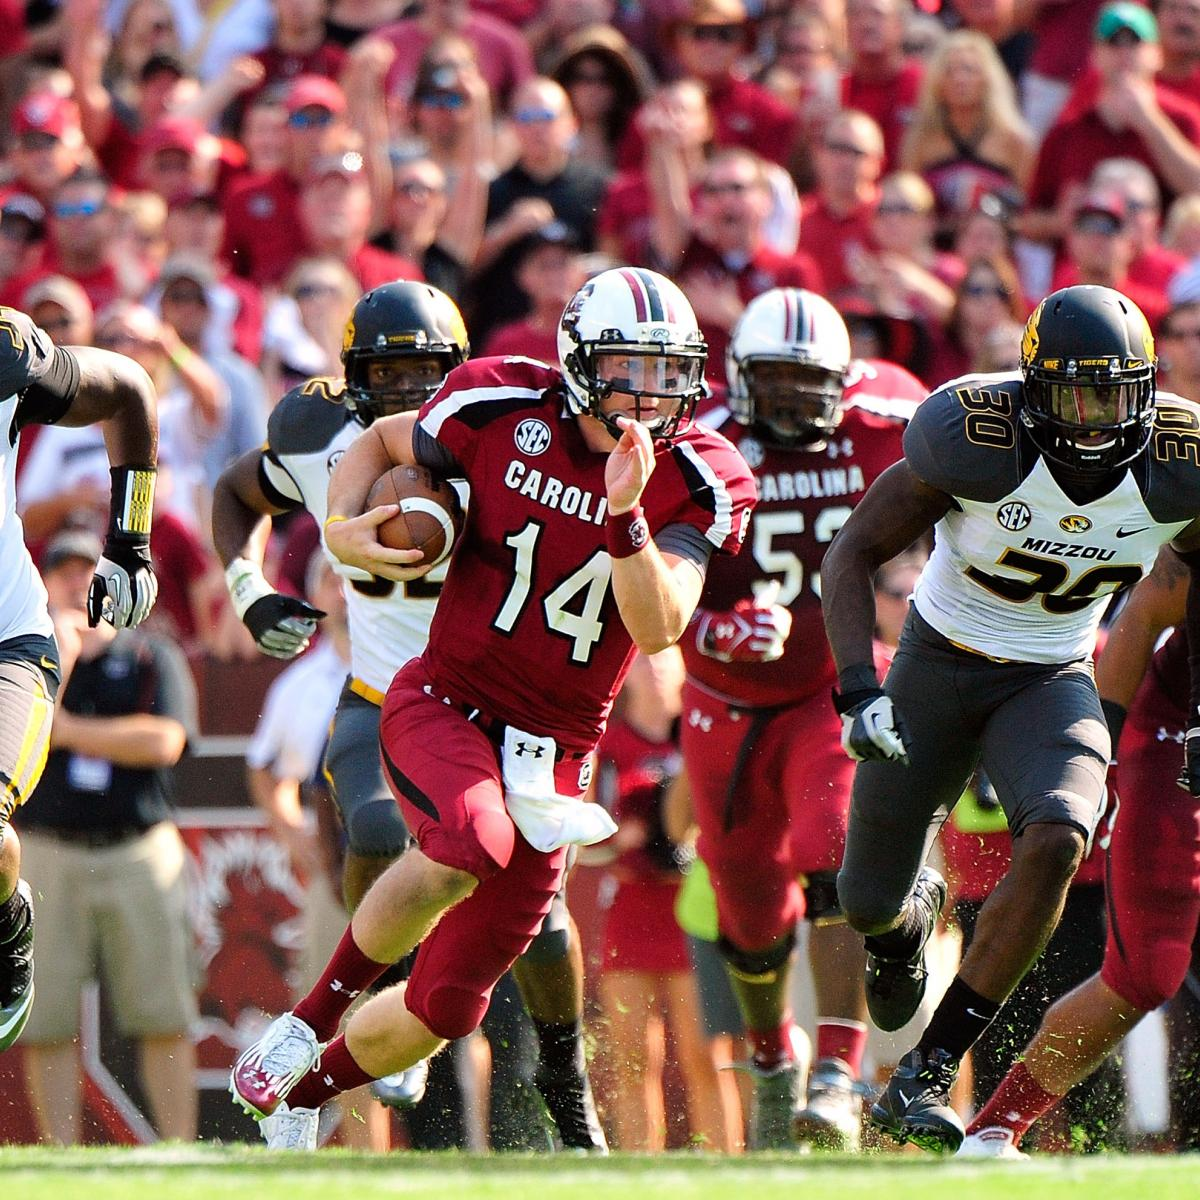 South Carolina Football: 10 Things We Learned from the ...